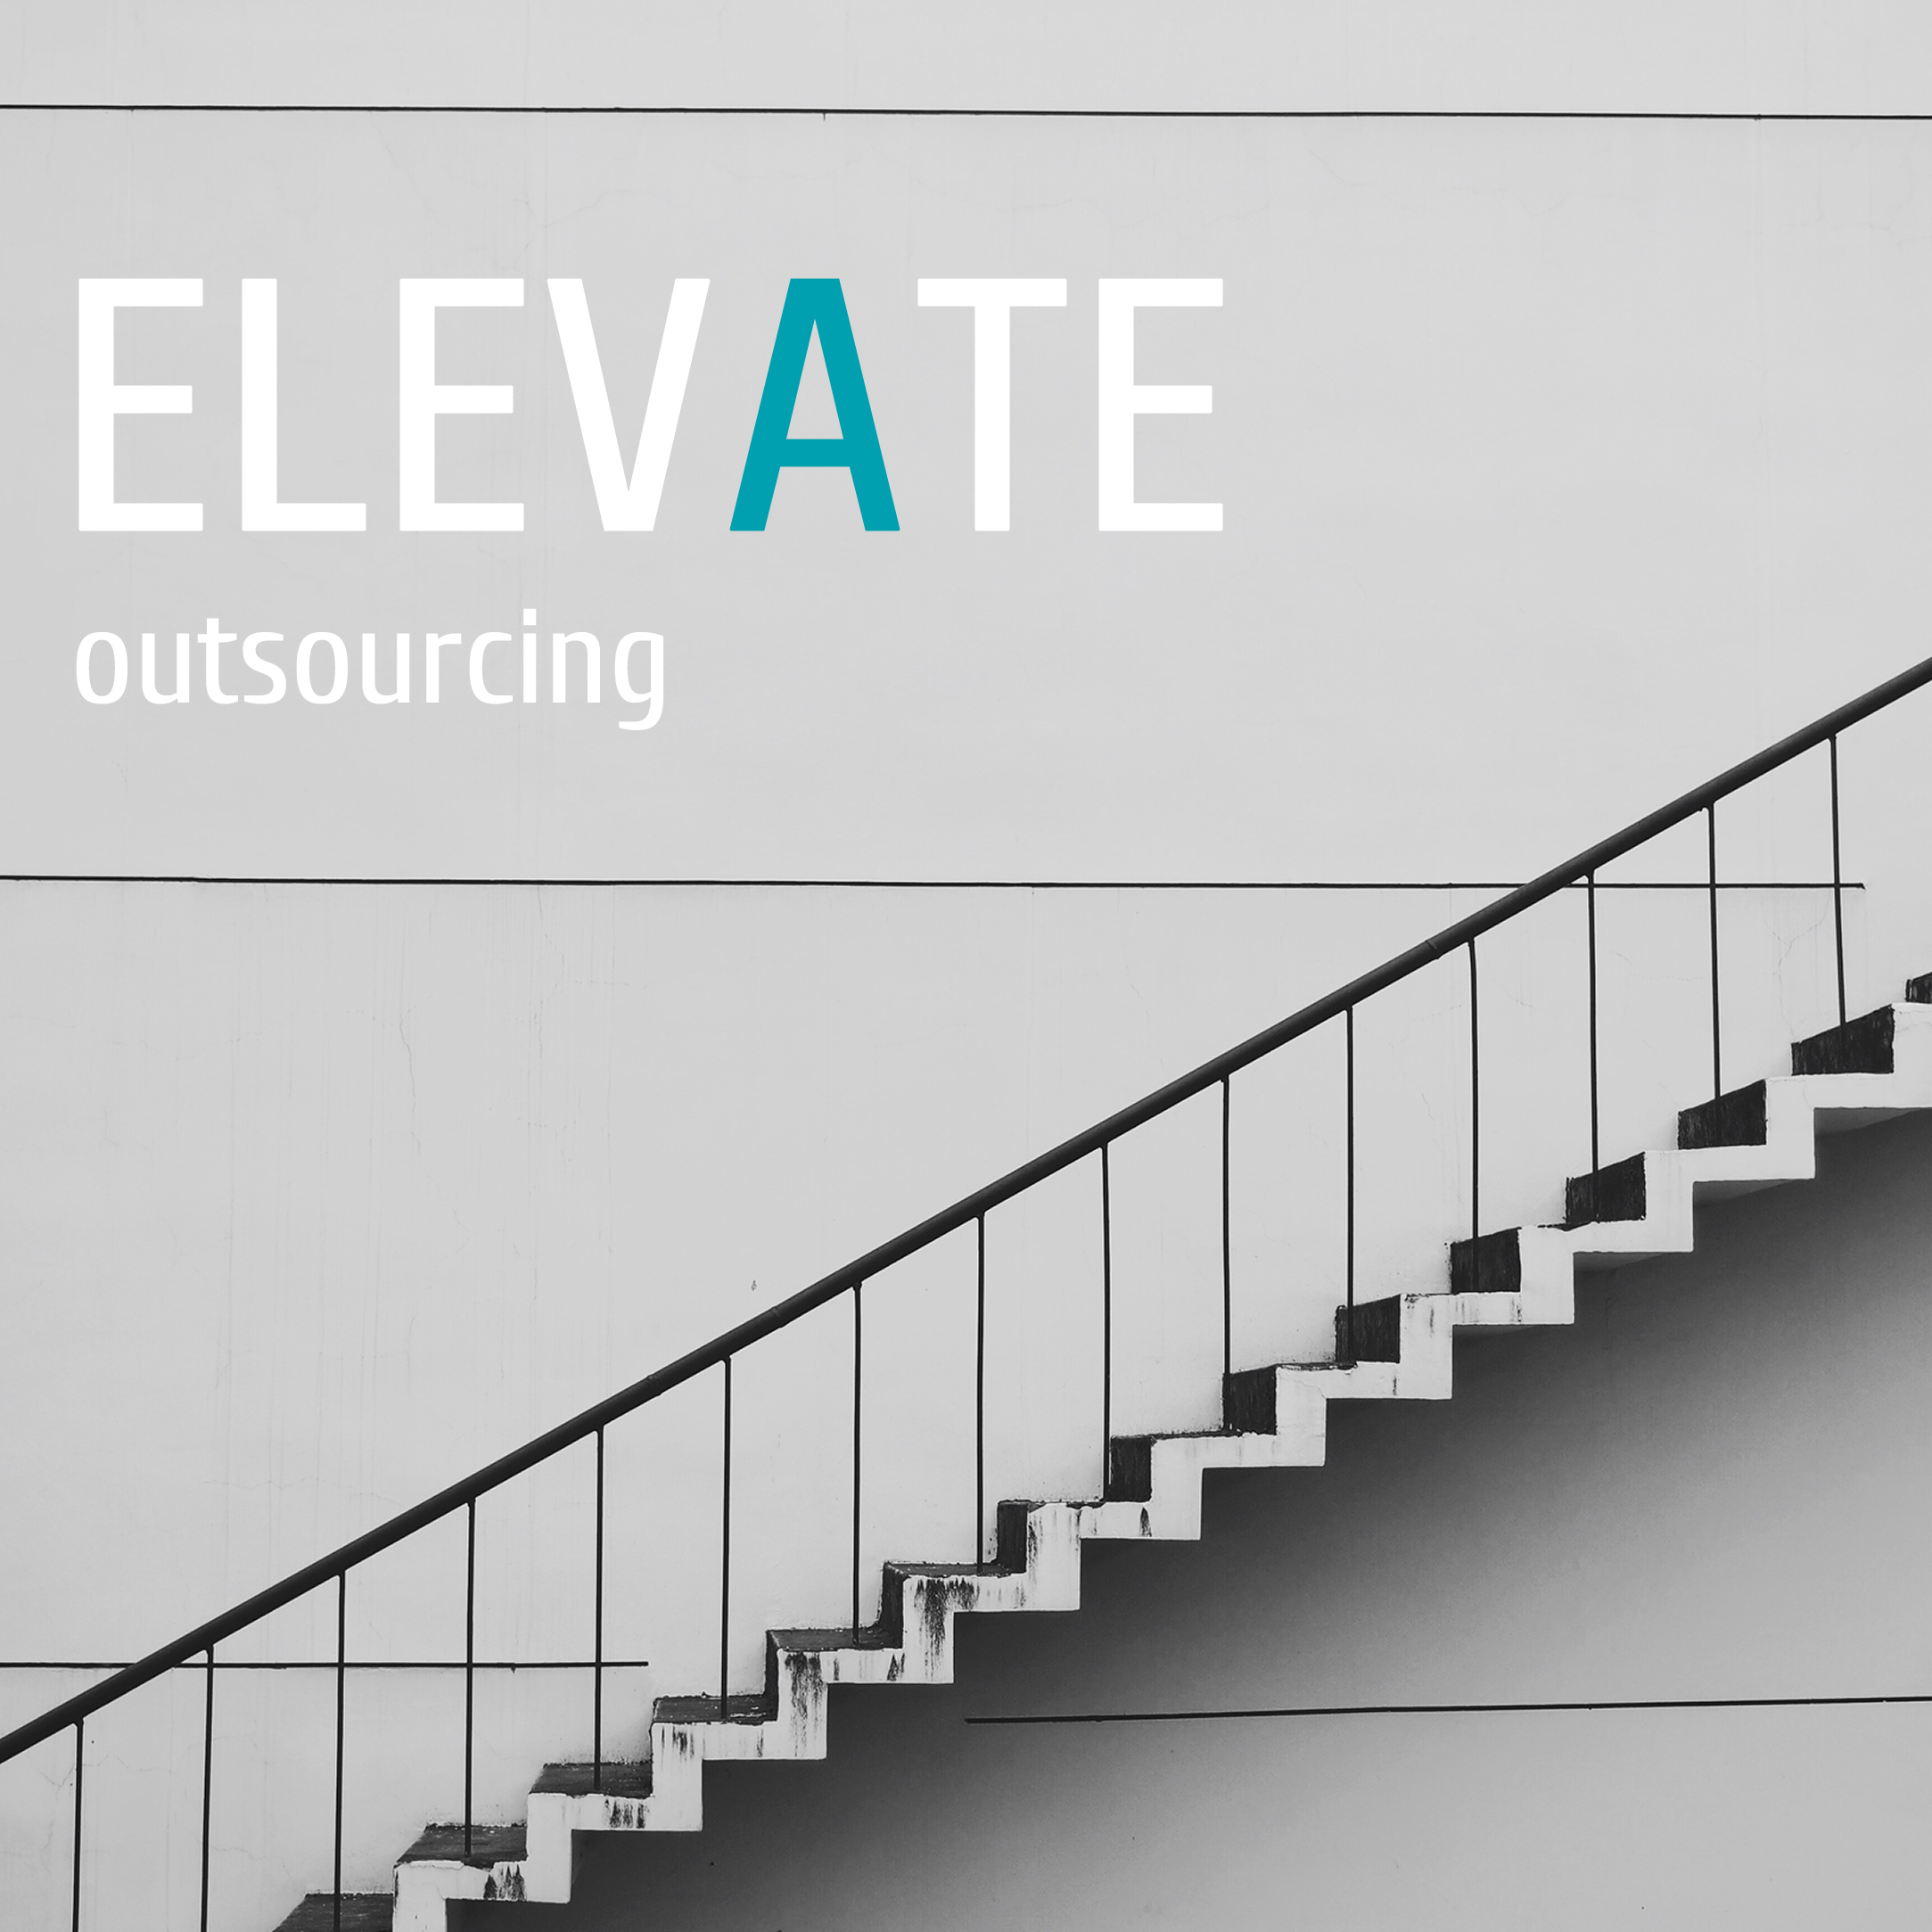 Elevate outsourcing rh